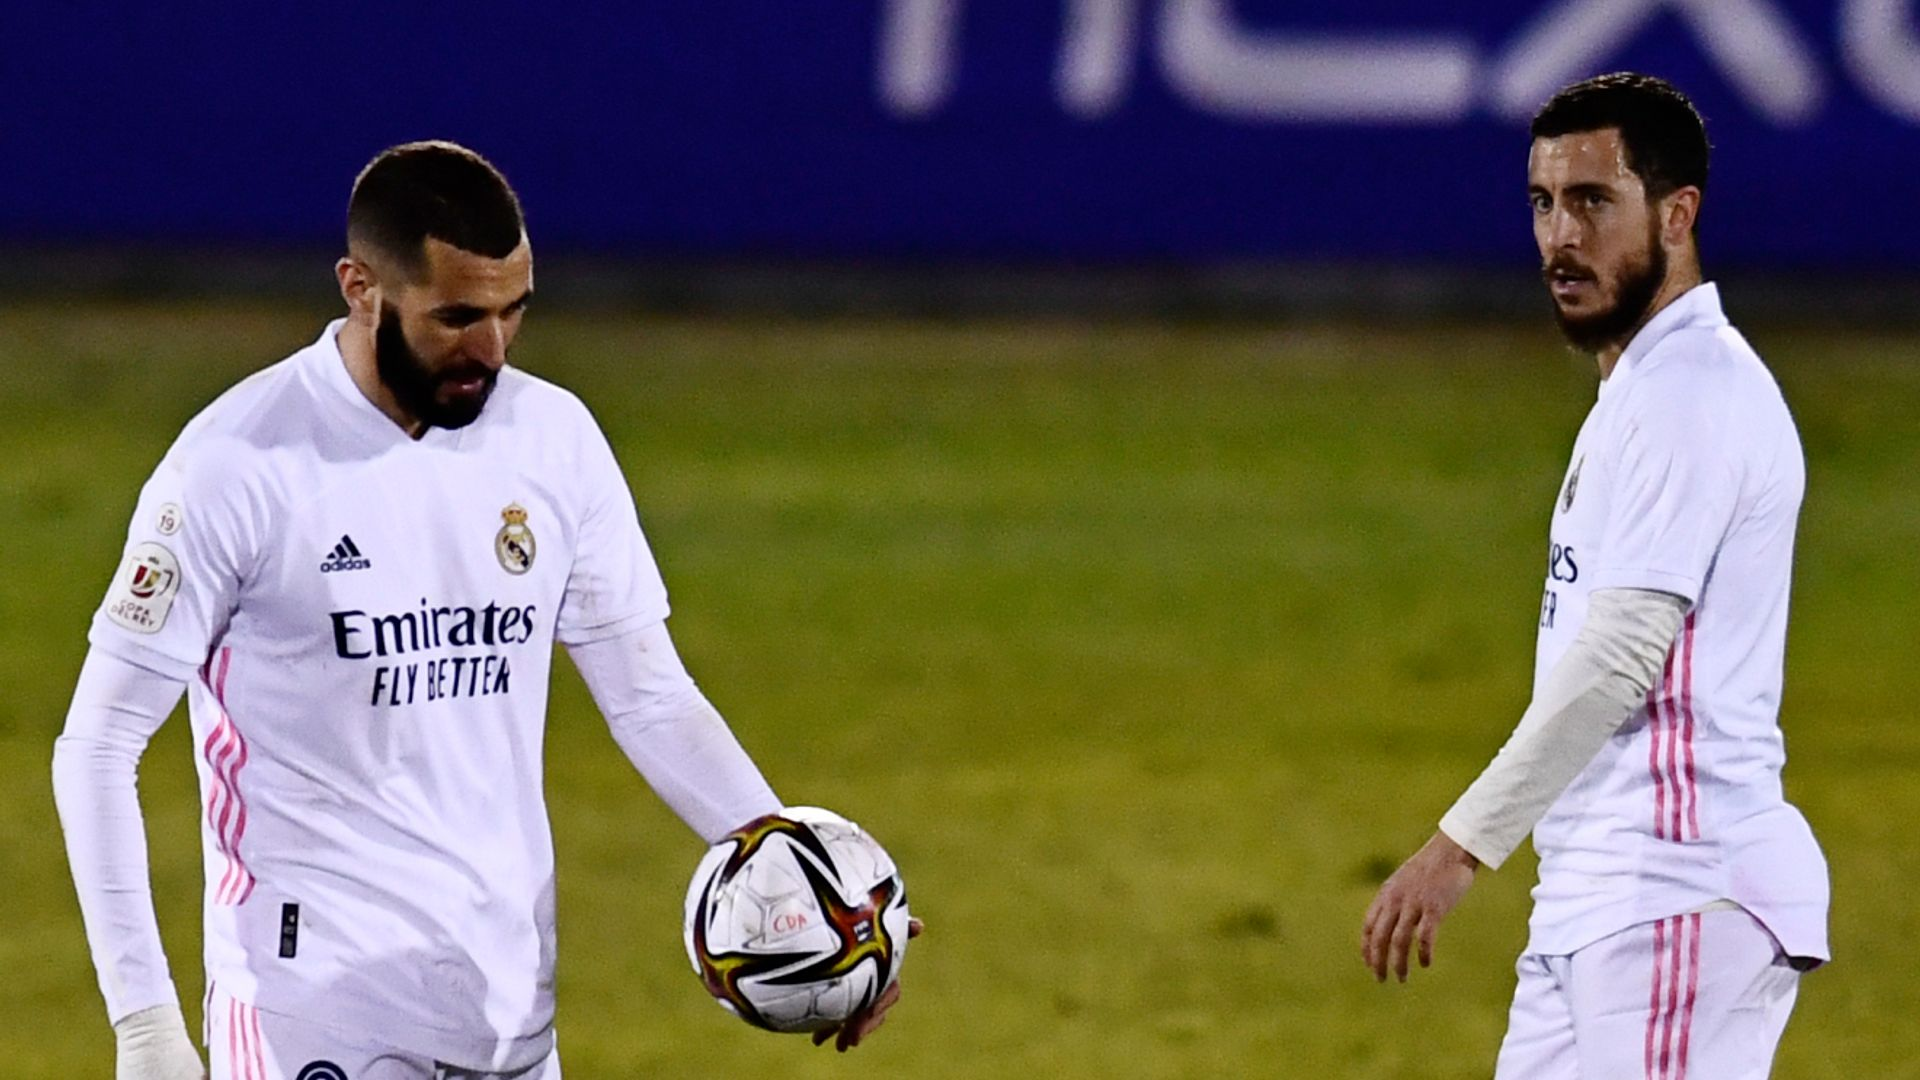 Real Madrid lose to third-tier Alcoyano